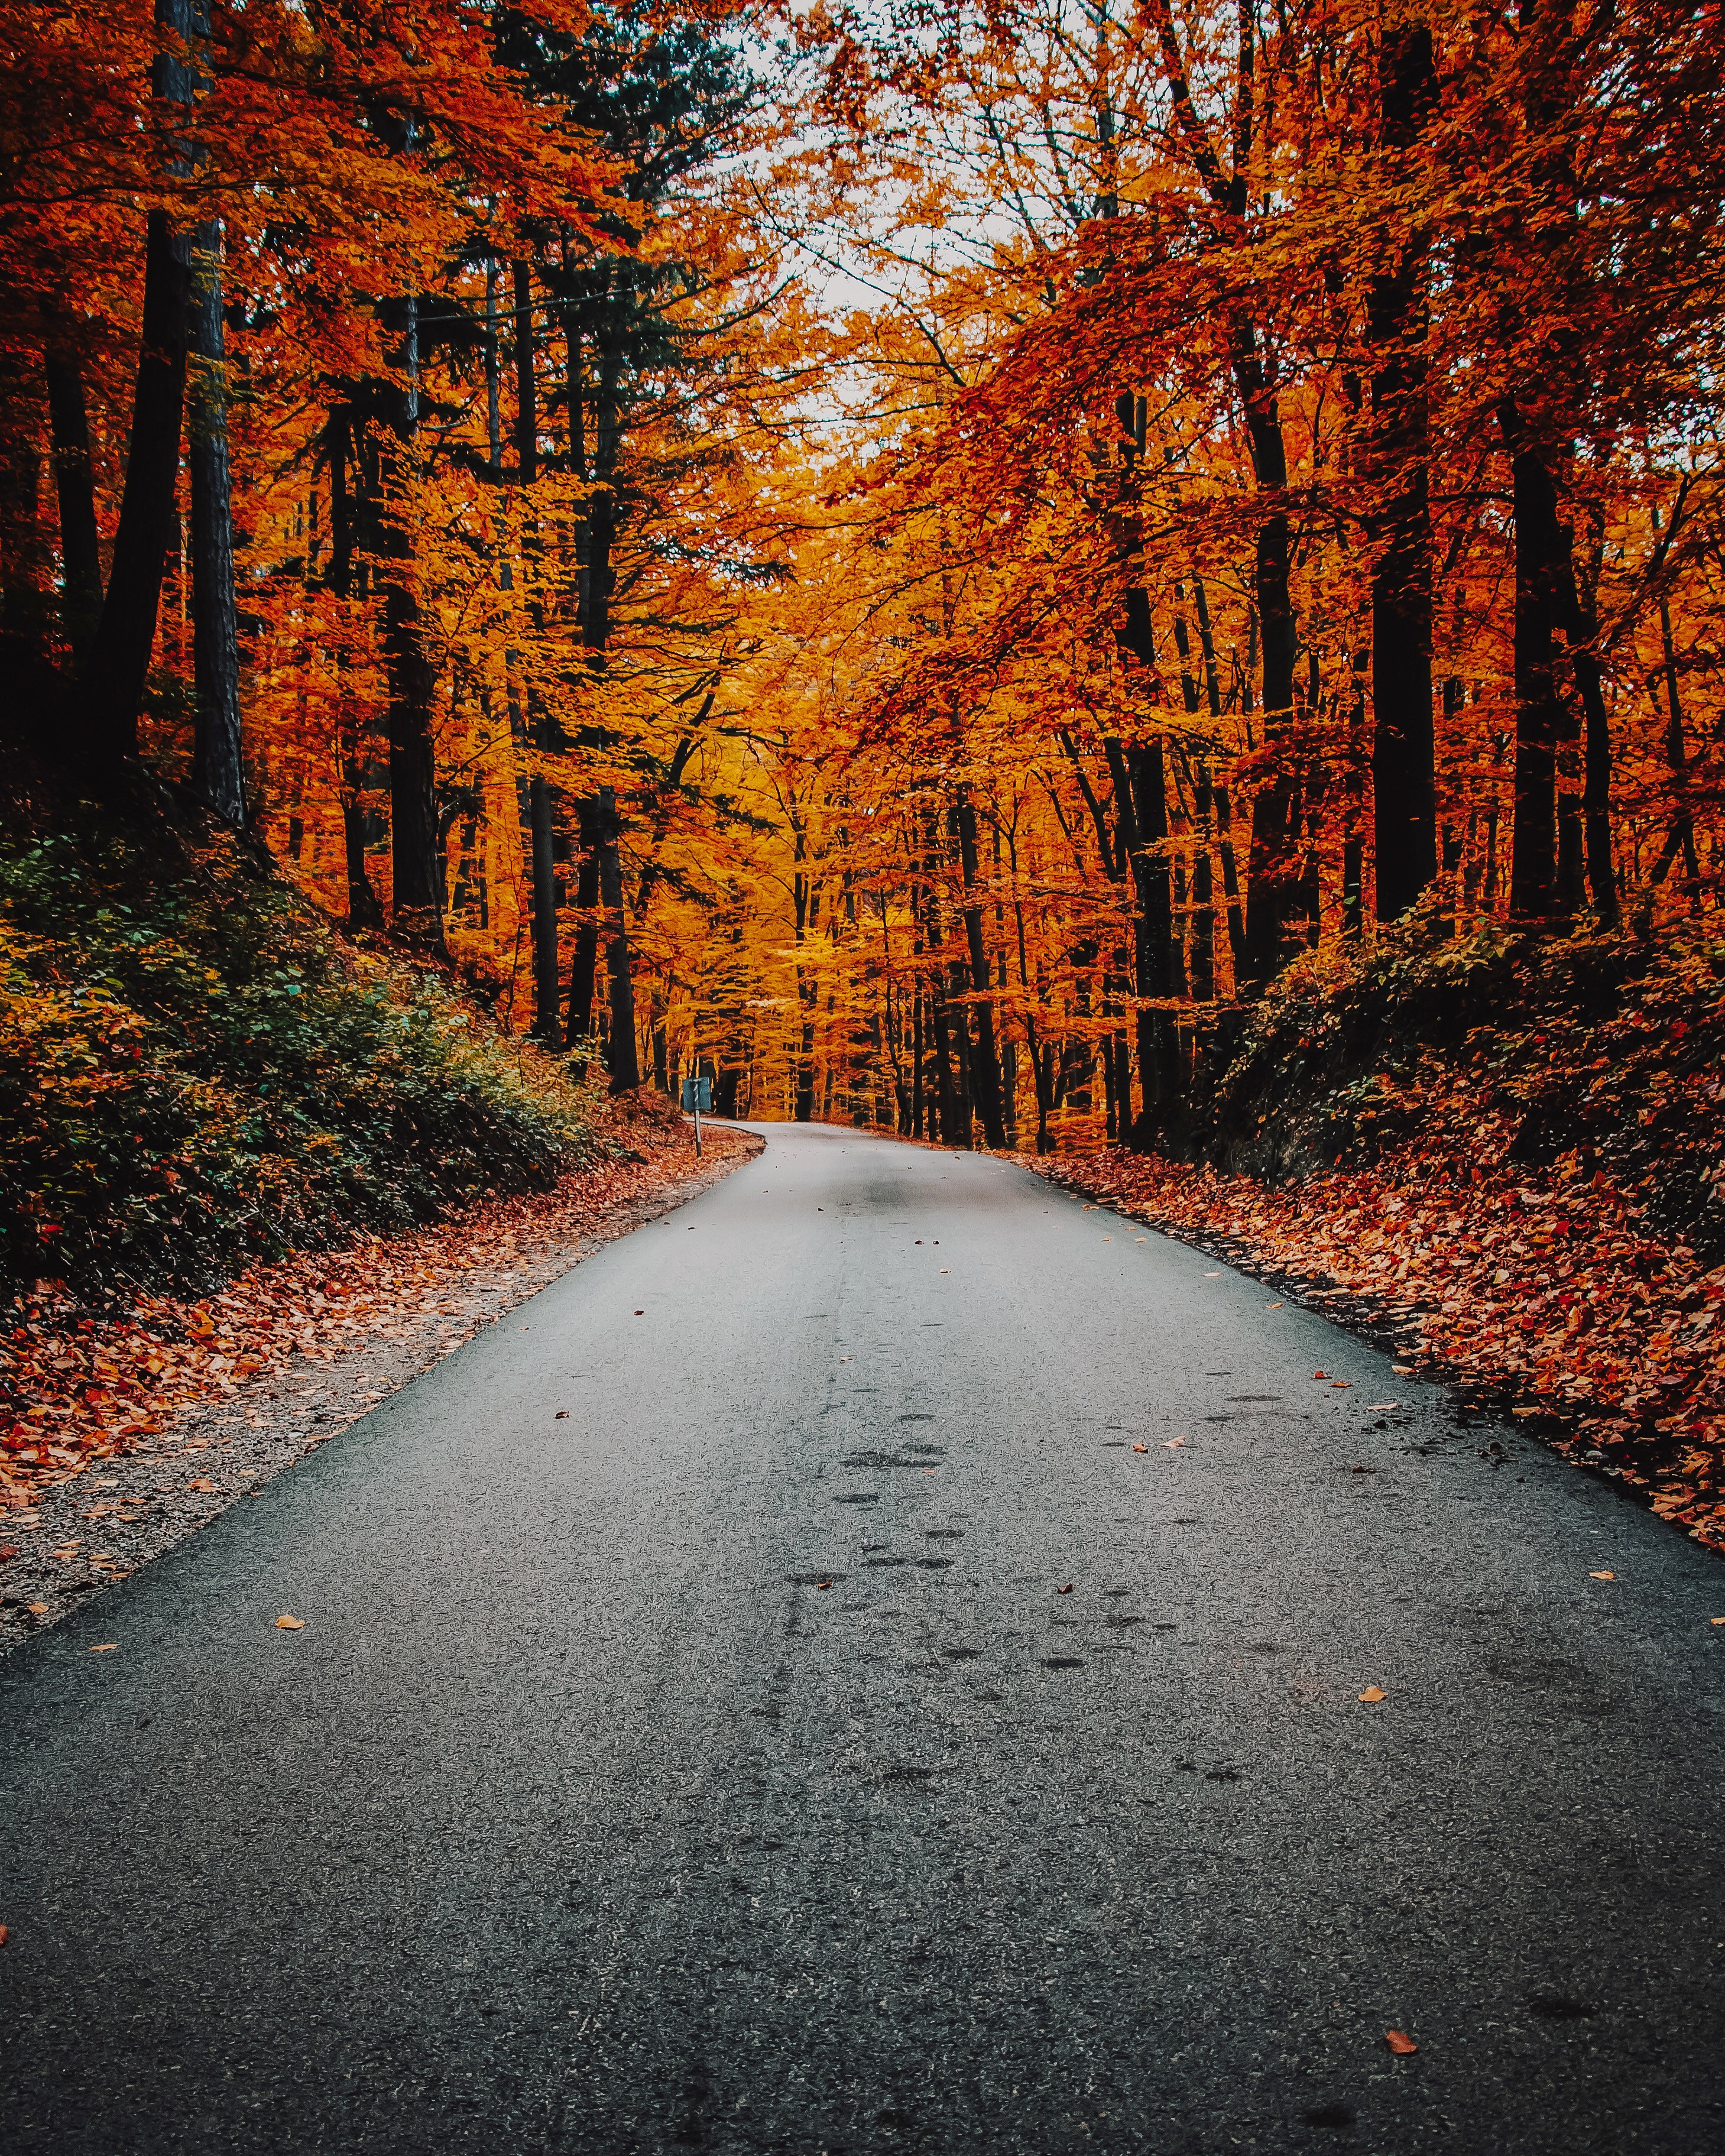 A paved road through bright orange trees in autumn.